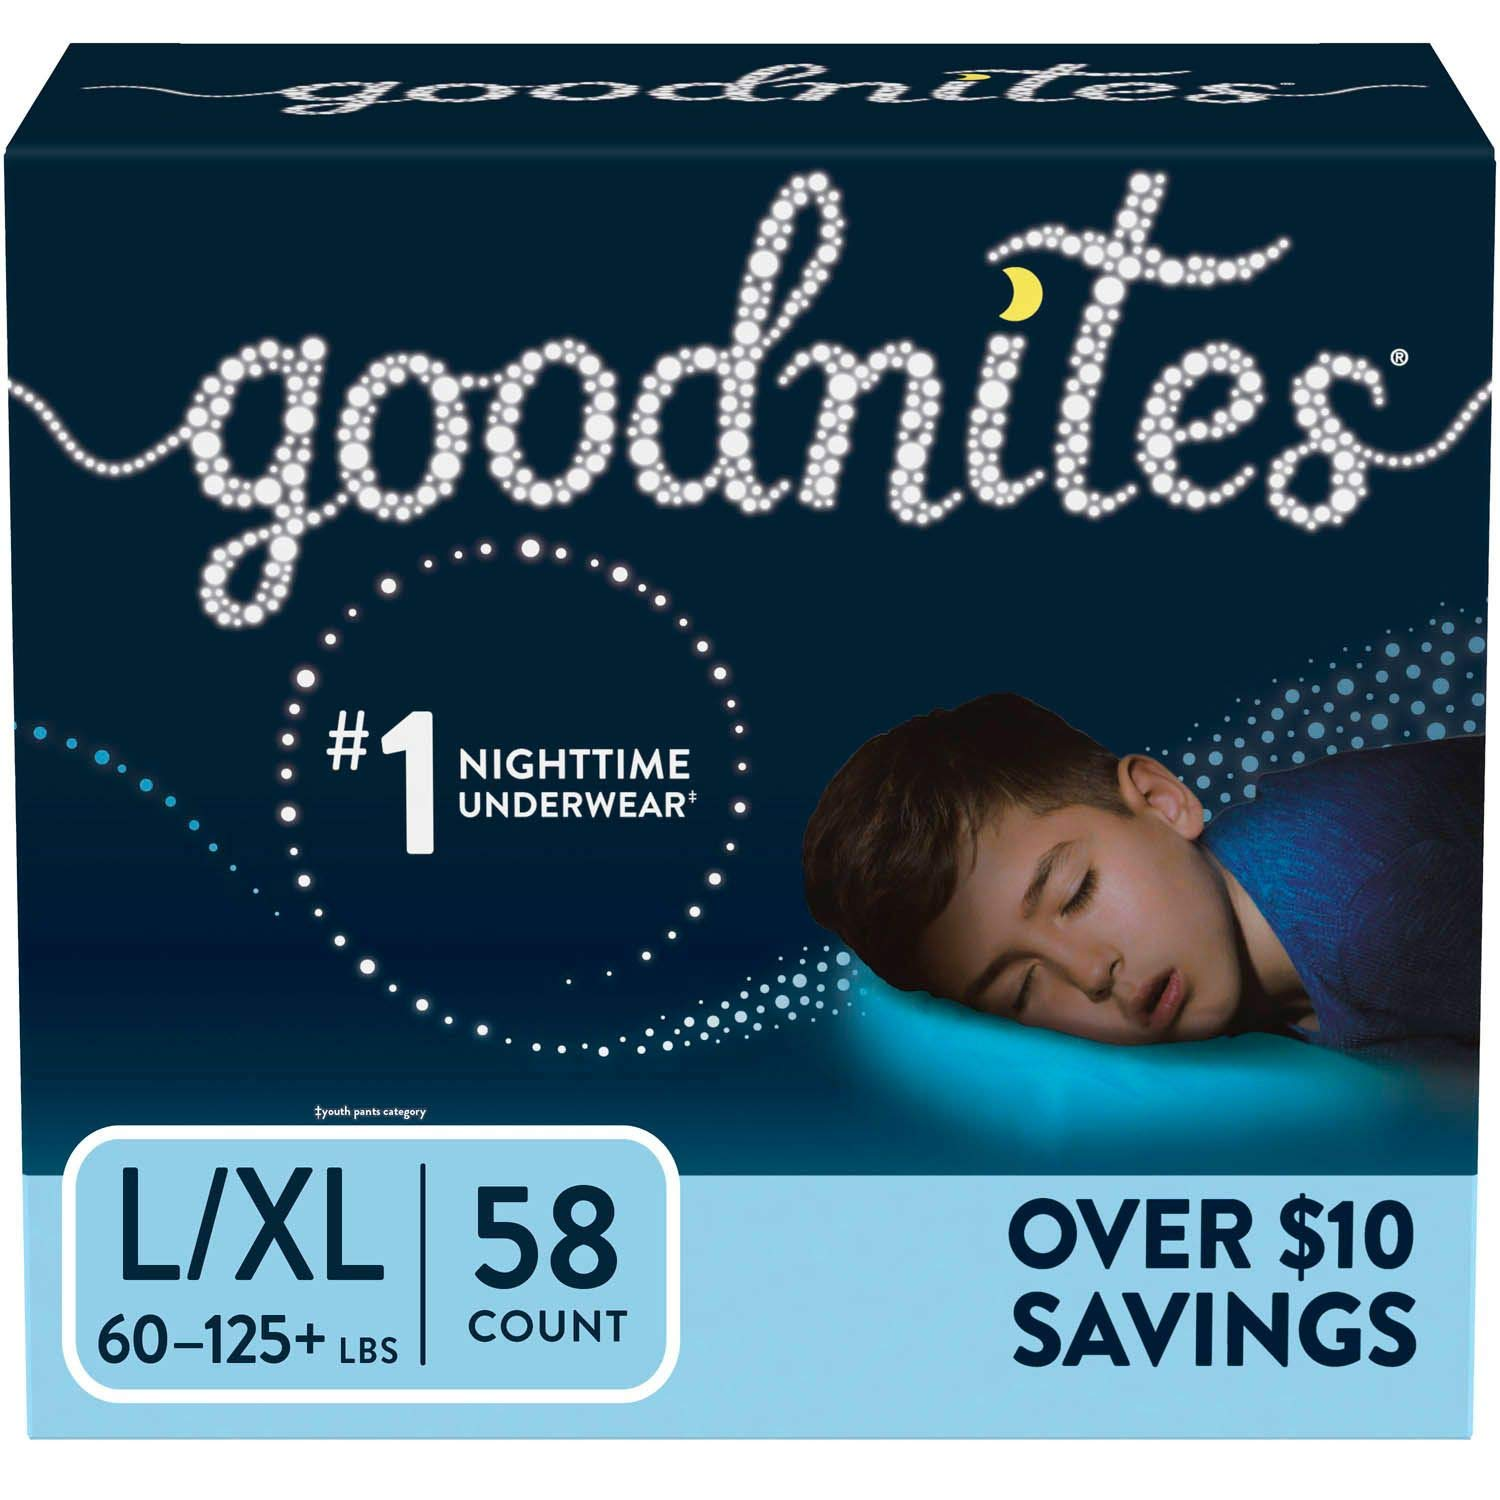 GoodNites Girl/'s Night Time Underwear L//XL 34 count 2 day FREE shipping!